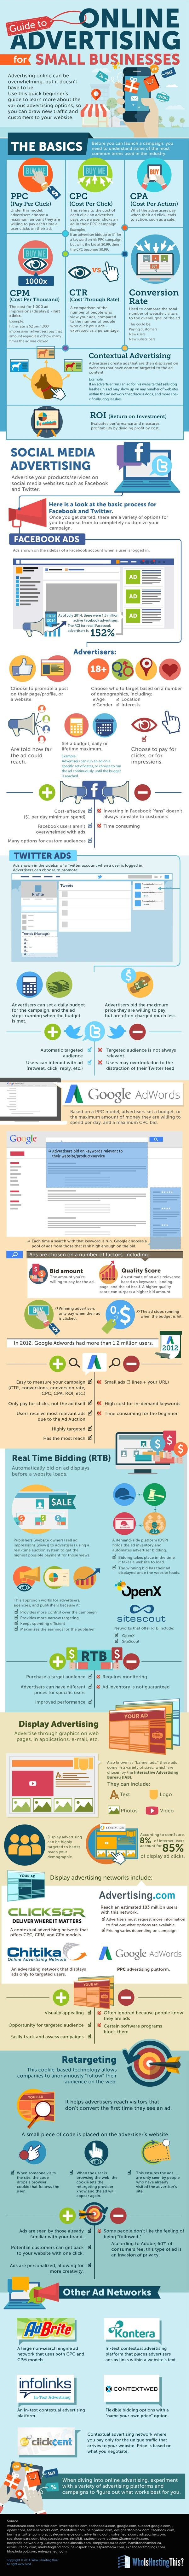 Marketing-Infographic-Guide-to-OnlineAdvertising-for-SmallBusinesses.-Advertising-online-can-be-ov Marketing Infographic : Guide to #OnlineAdvertising for #SmallBusinesses.  #Advertising online can be ov...